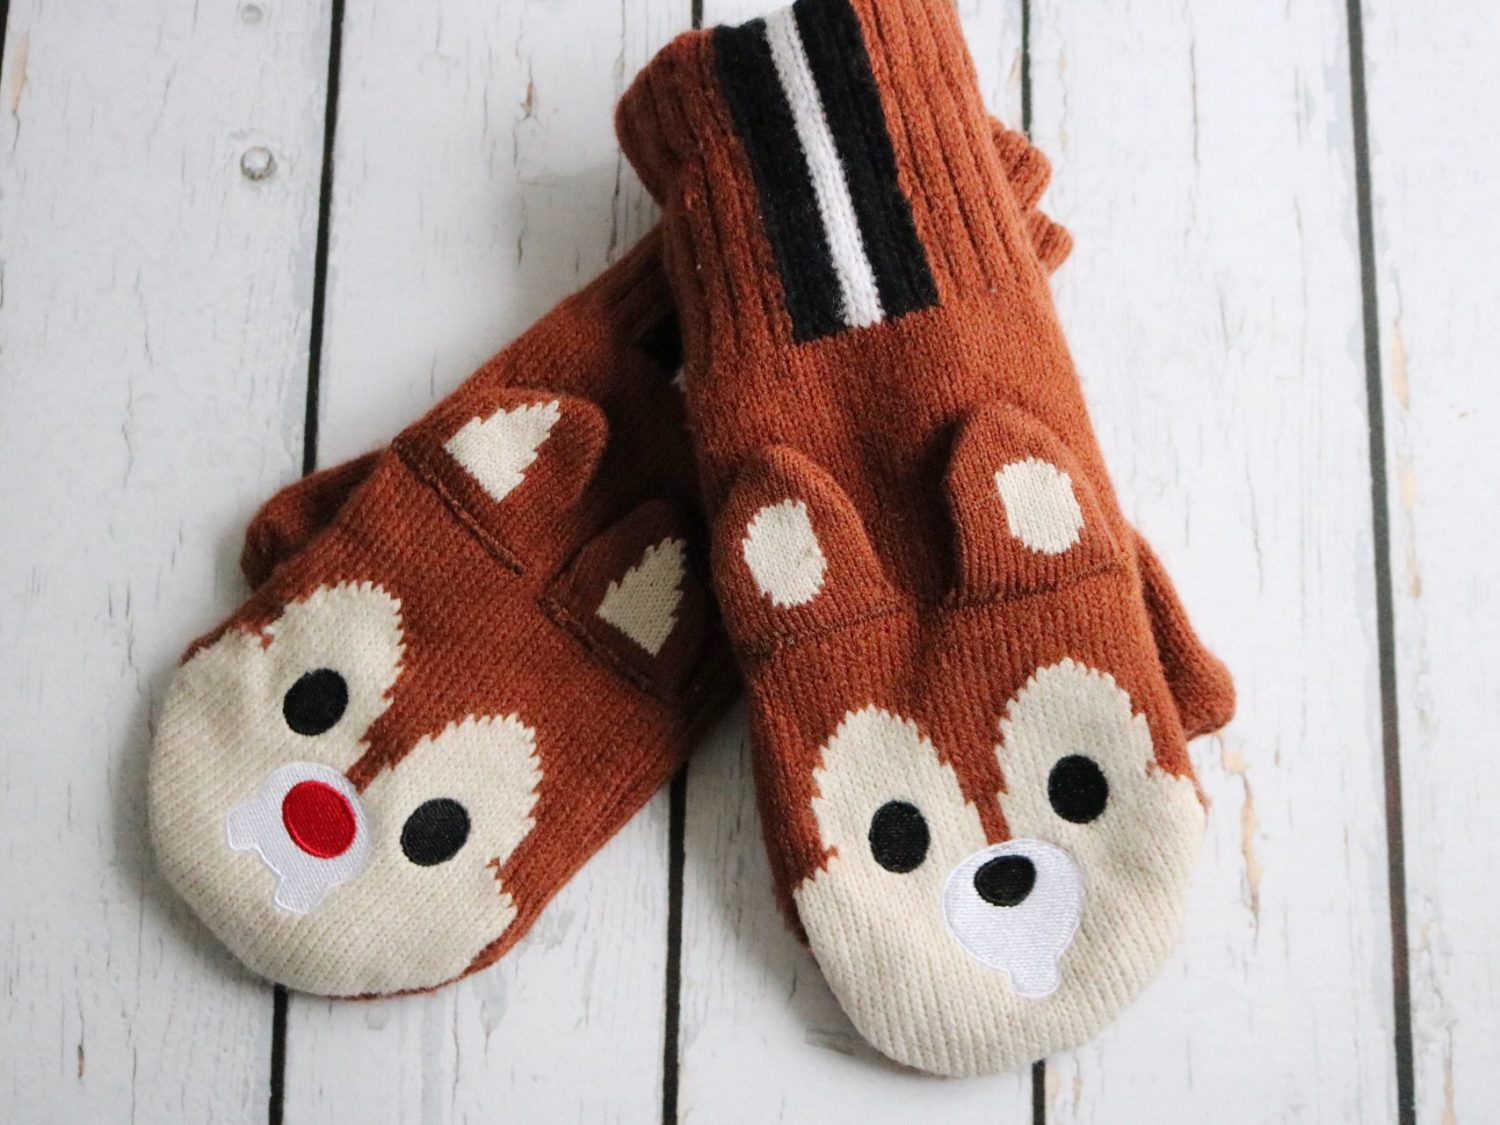 Disneyland Paris Chip 'n Dale Mittens